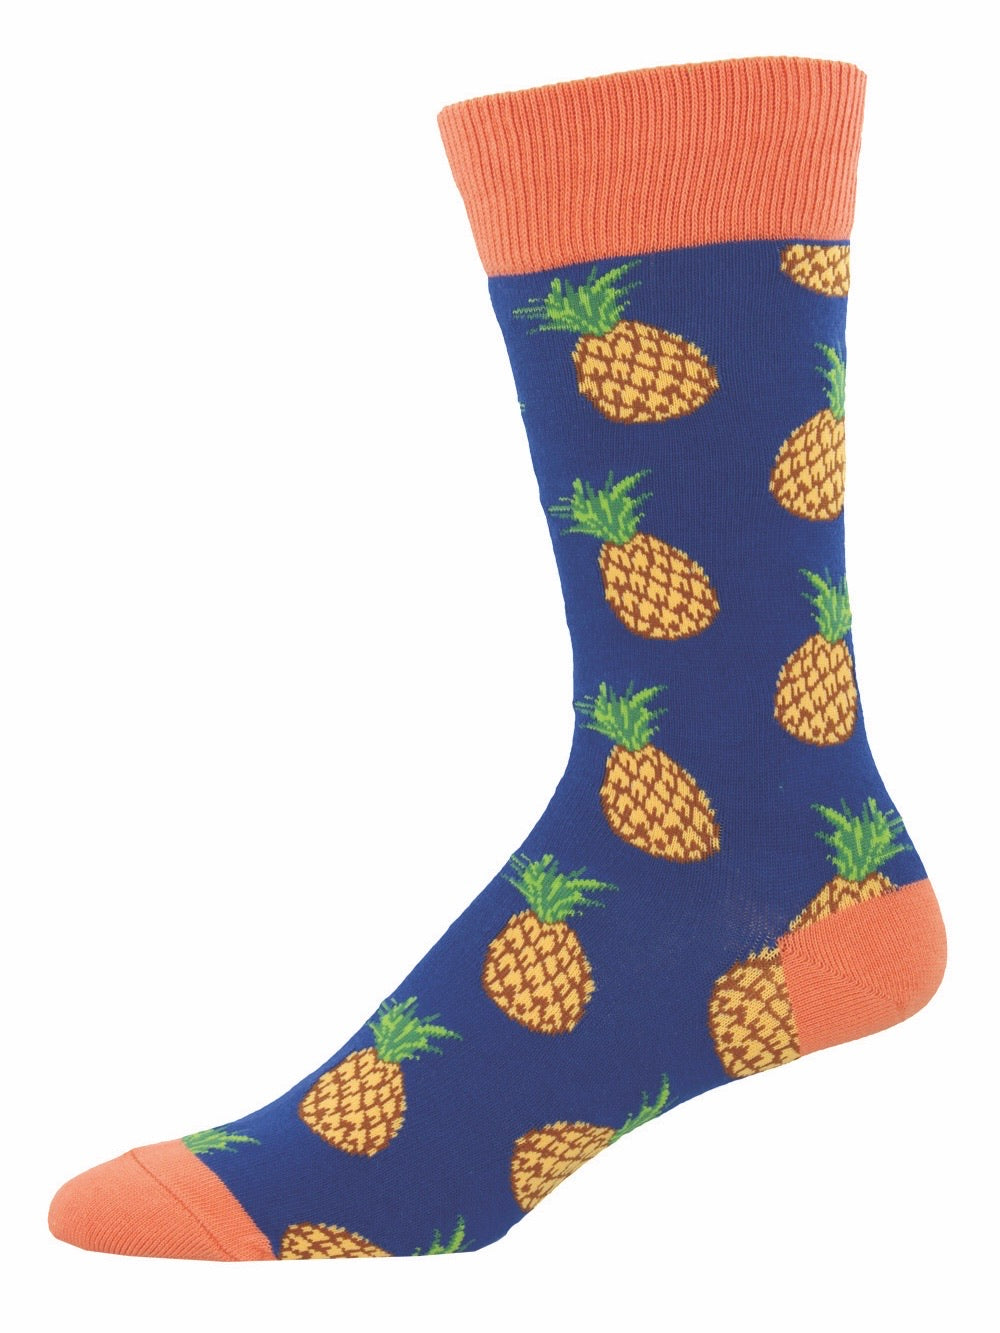 Men's Many Pineapples Socks Navy